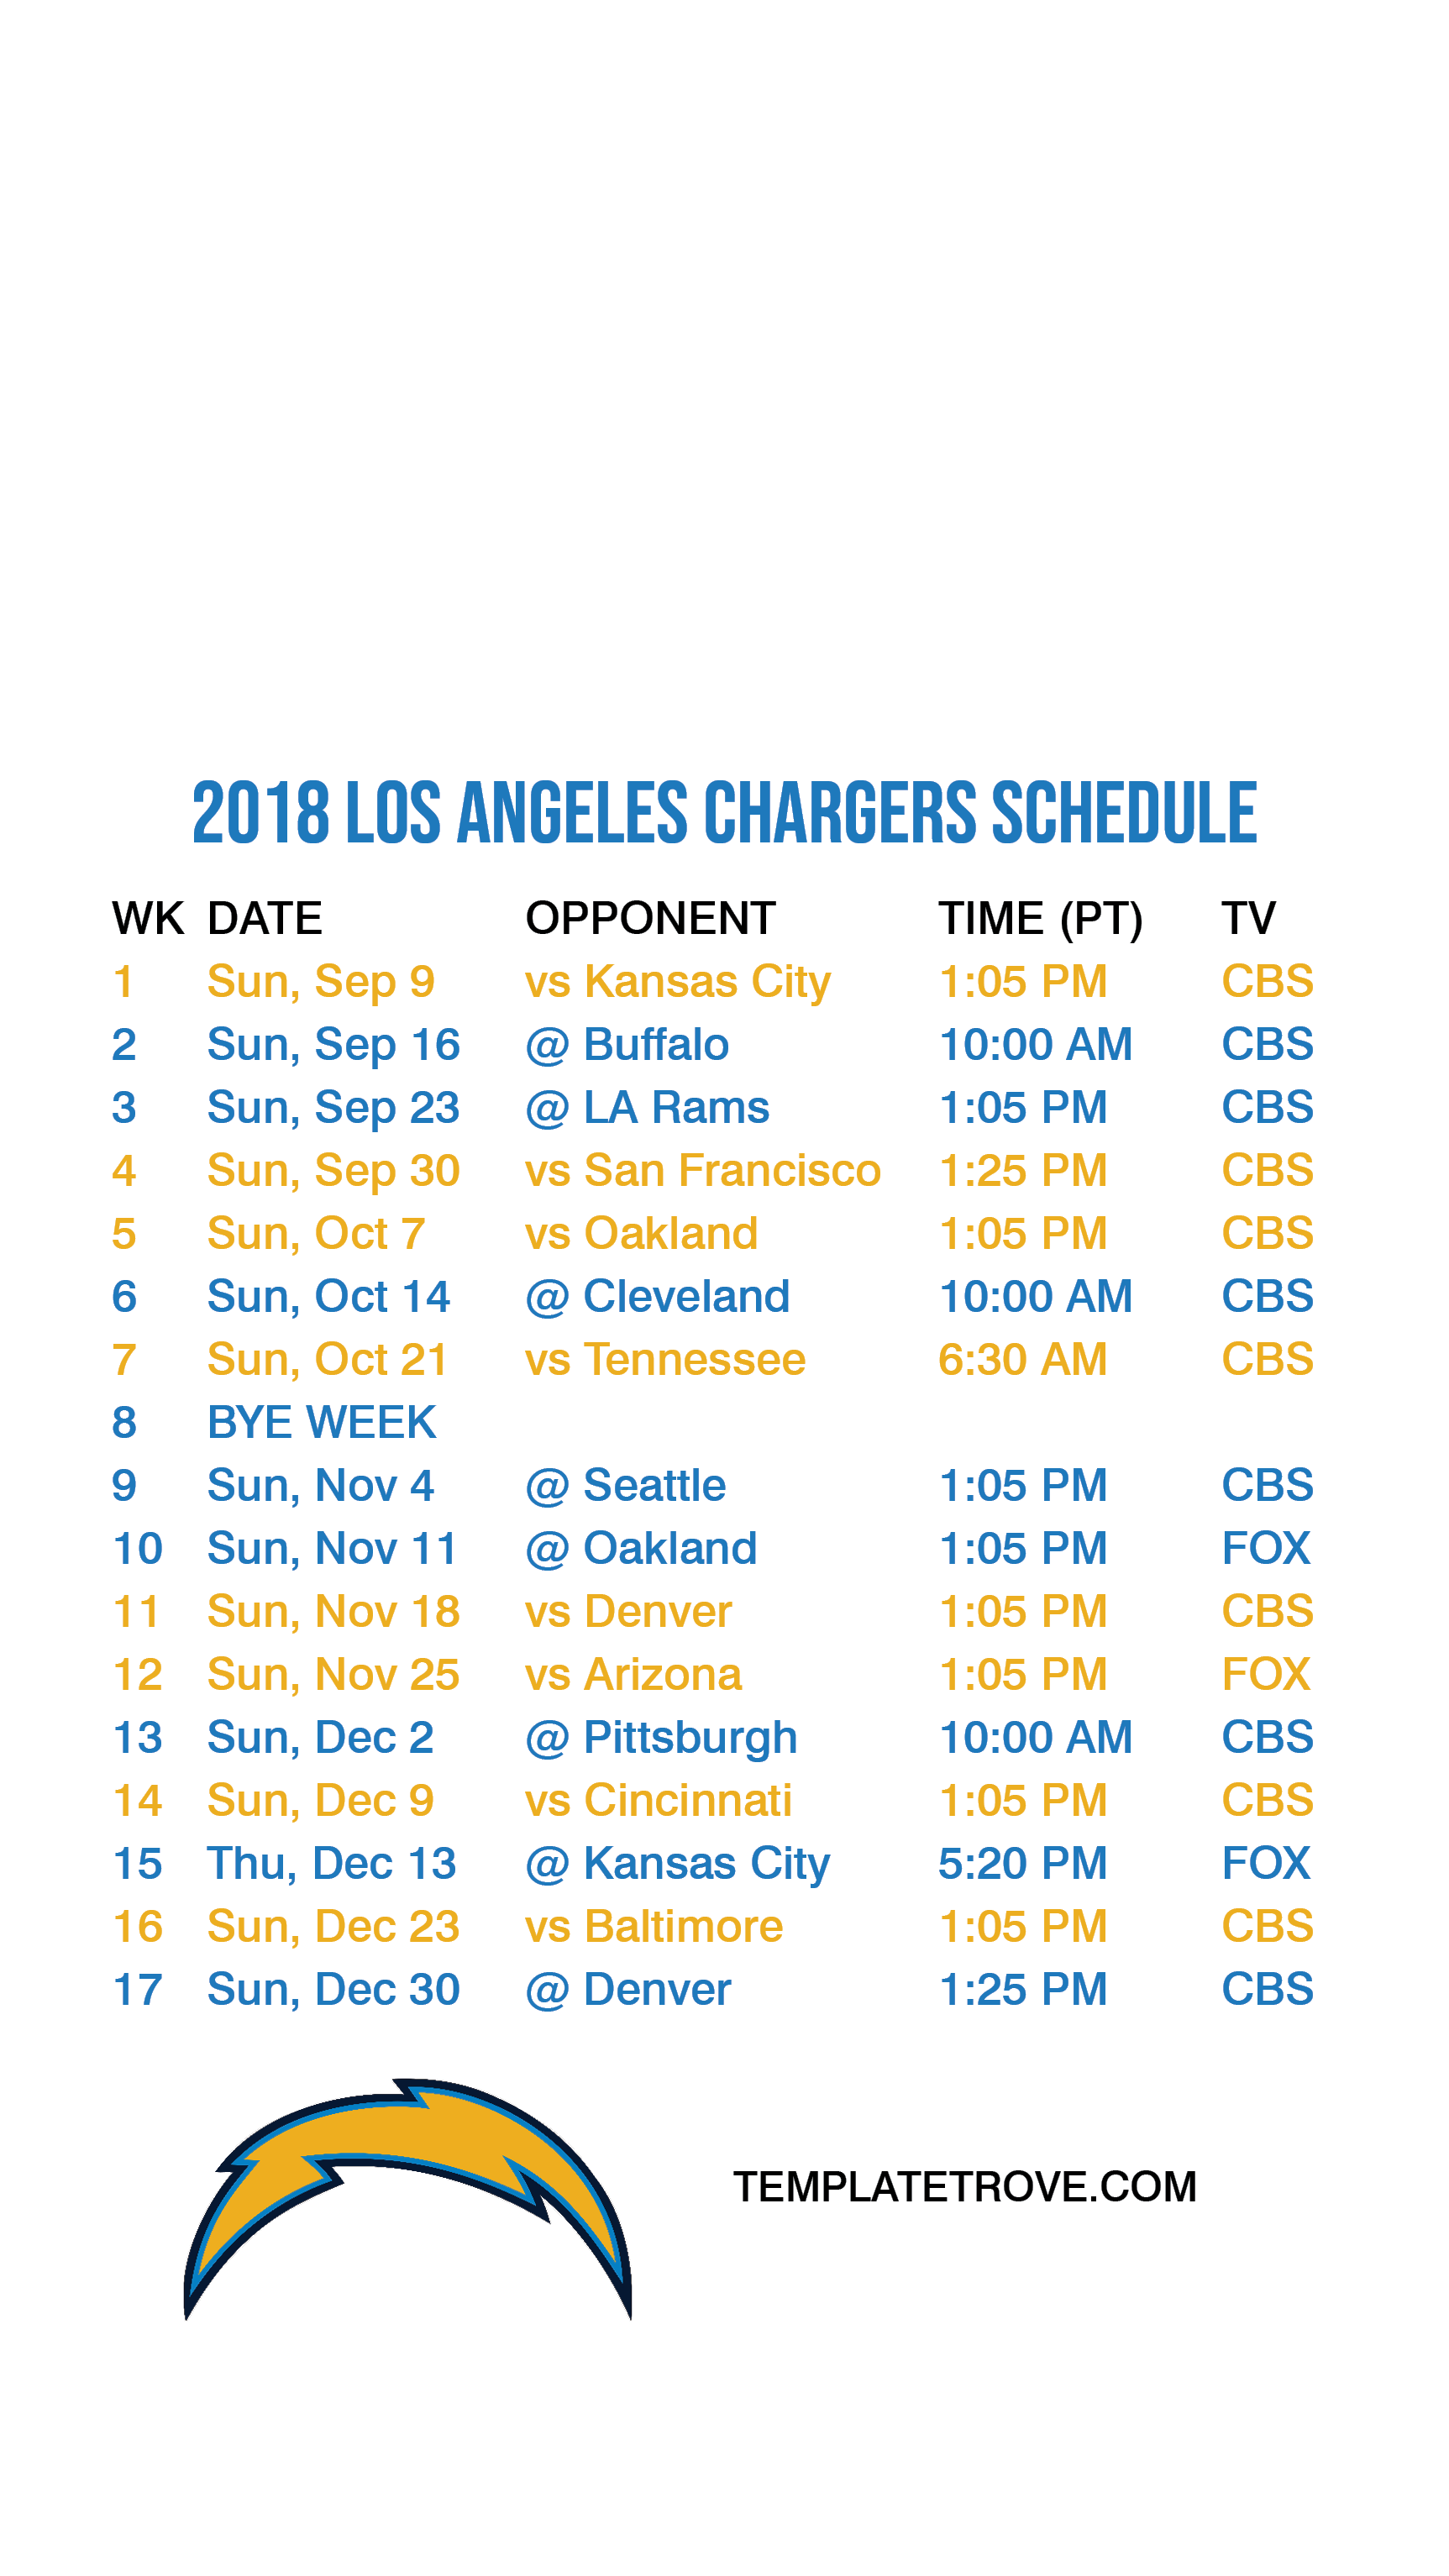 2018 2019 Los Angeles Chargers Lock Screen Schedule for iPhone 6 7 8